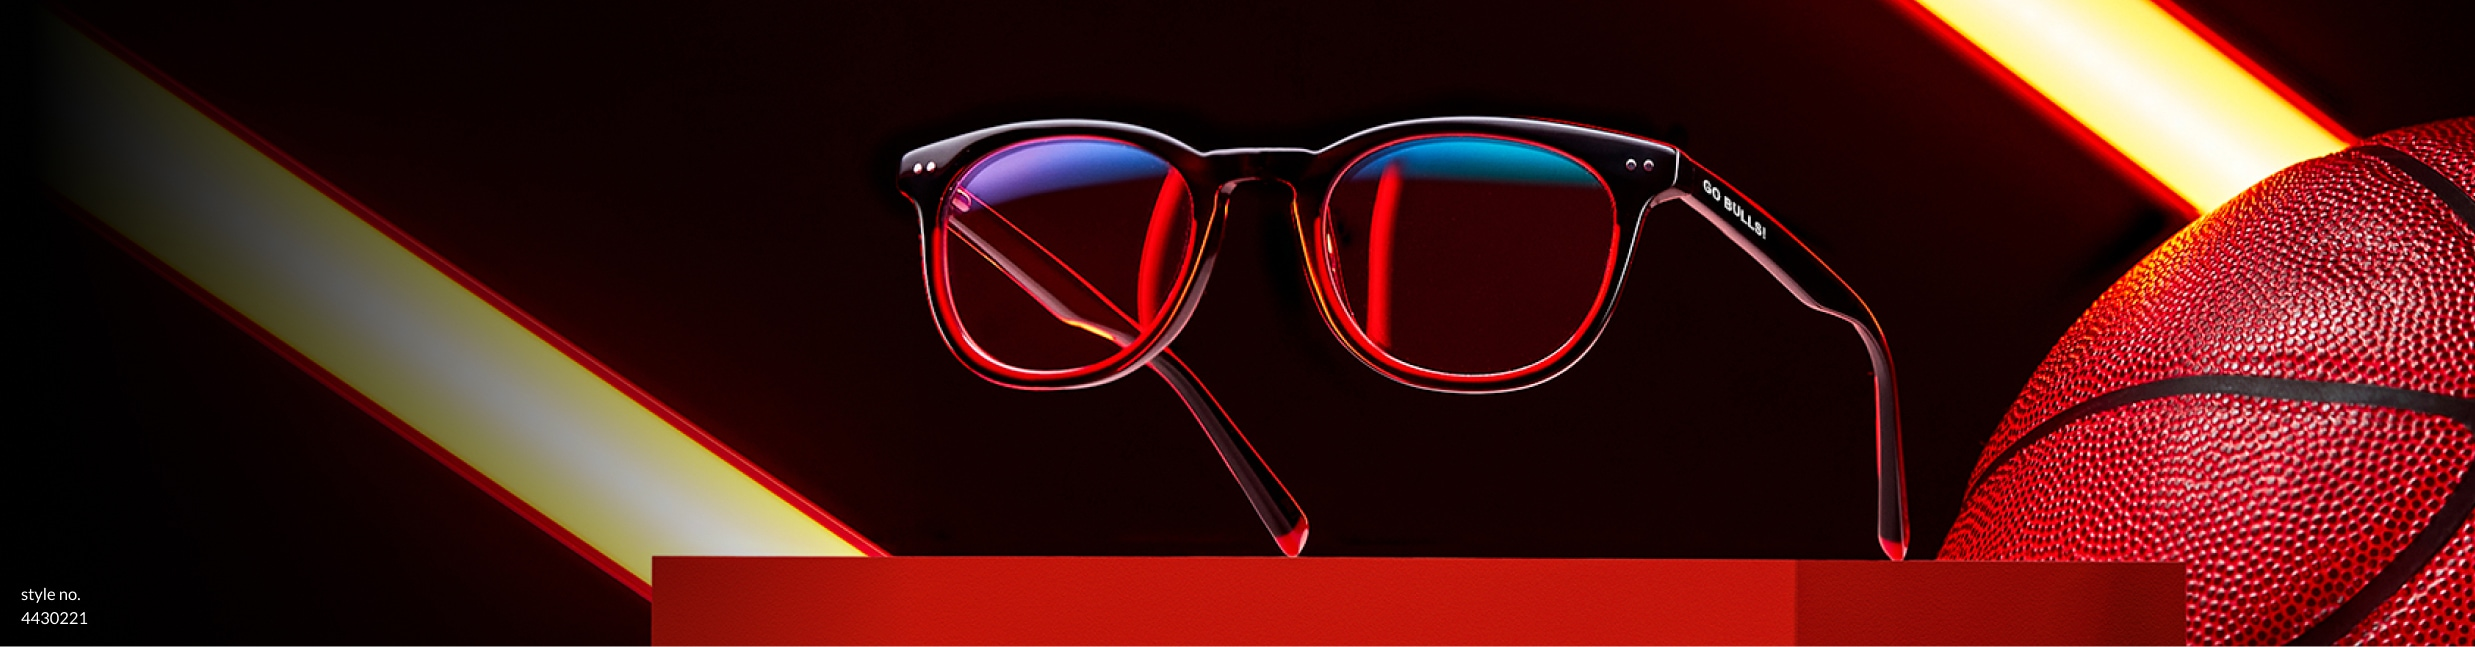 Zenni black and red round glasses Rim Rocker #4430221, displayed on a red platform next to a basketball.